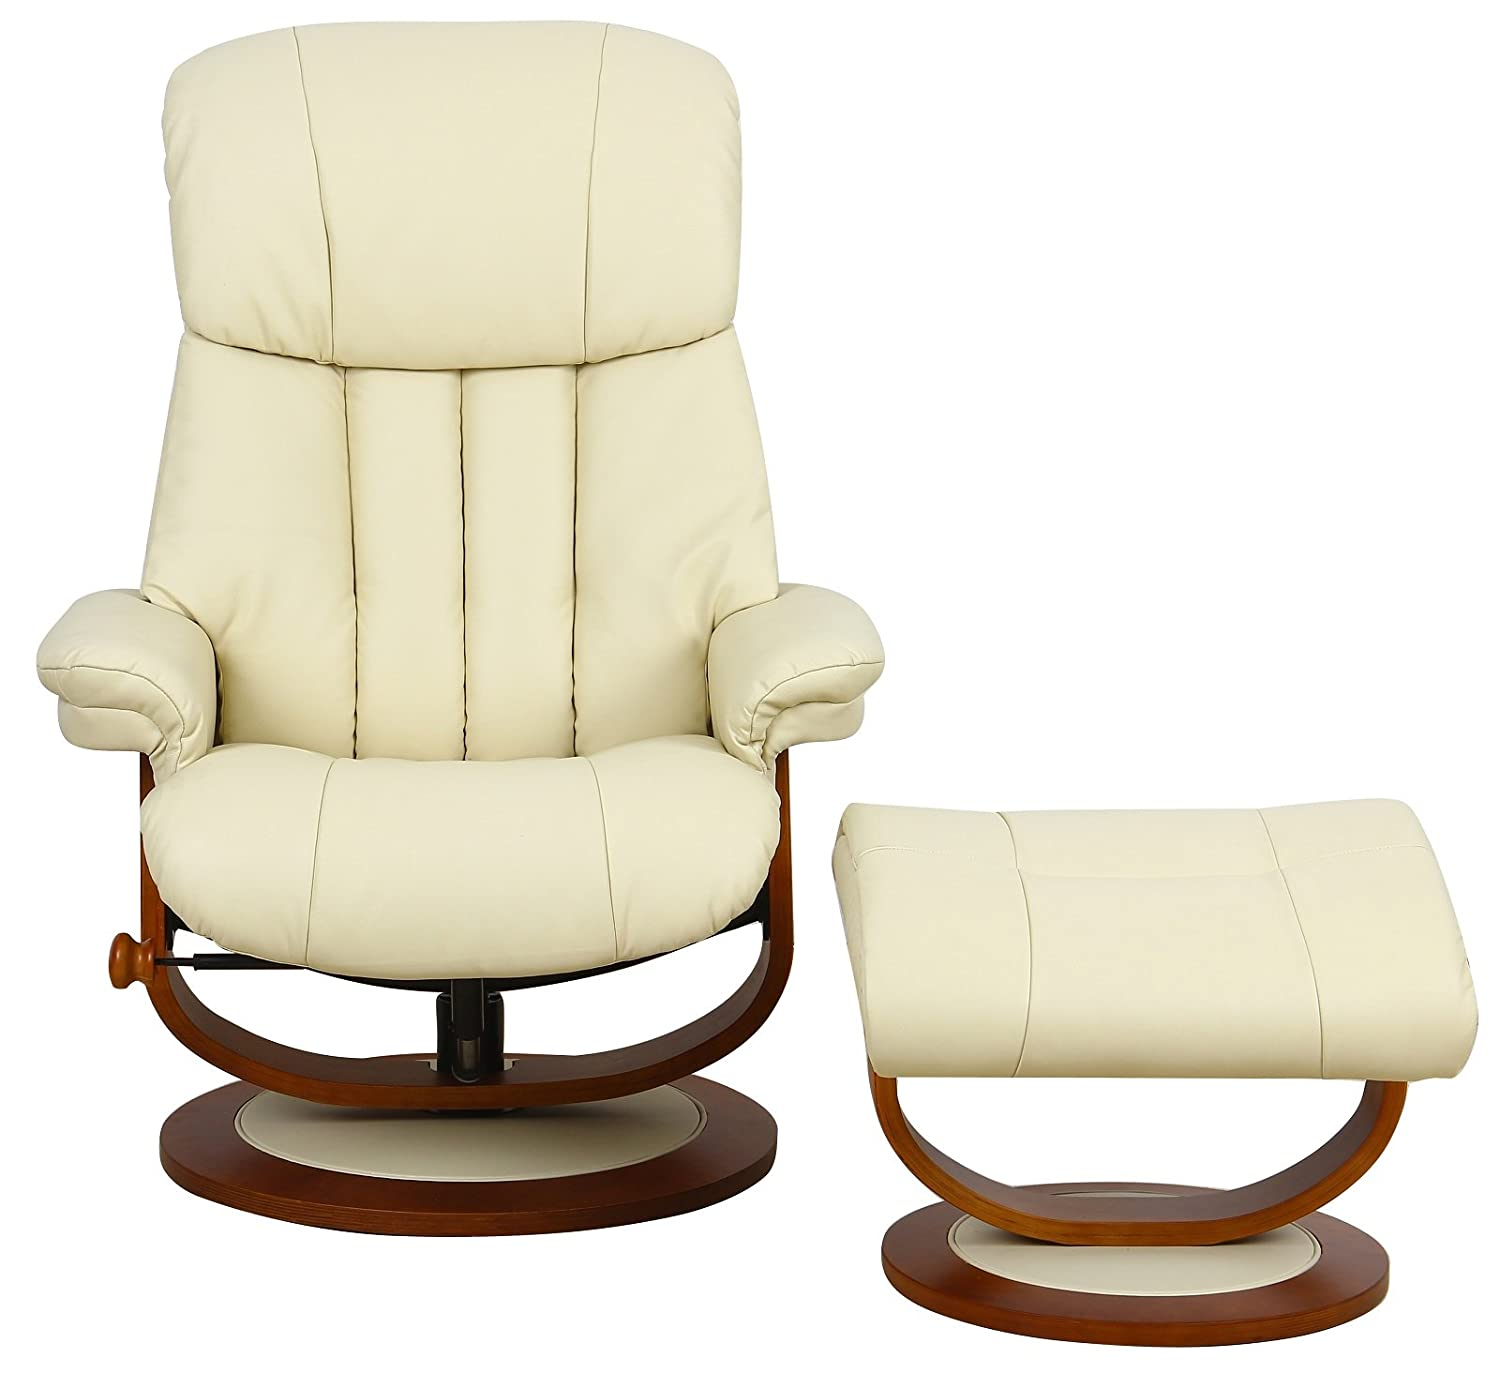 The Hereford Genuine Top Grain Leather Swivel Recliner Chair in